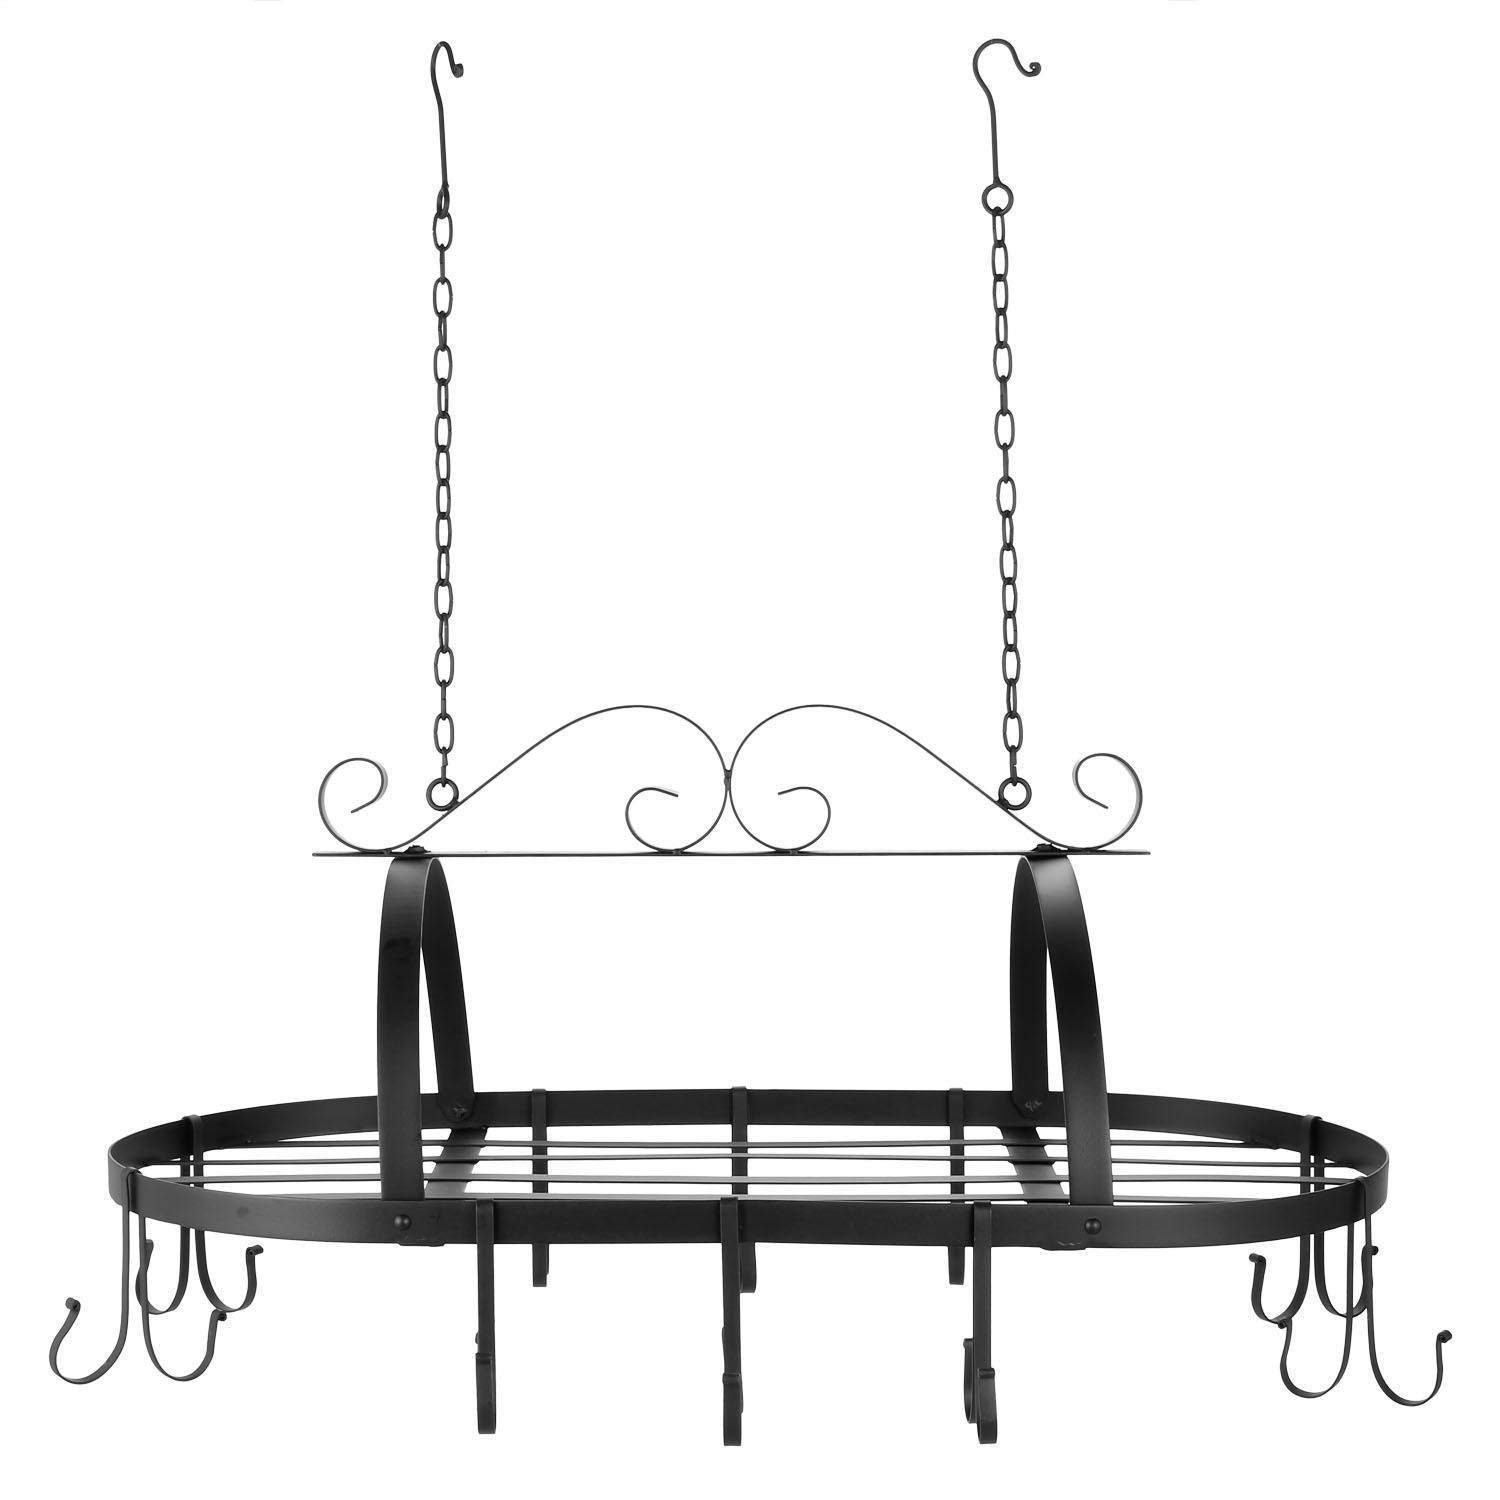 MyEasyShopping Hanging Pot Rack, Kitchen Iron Pot Rack Hanging Cookware Storage Holder with 10 Hooks, Hanging Rack Pot Kitchen Pan Storage Holder Iron Cookware And Mount Hook Wall Organizer Hanger